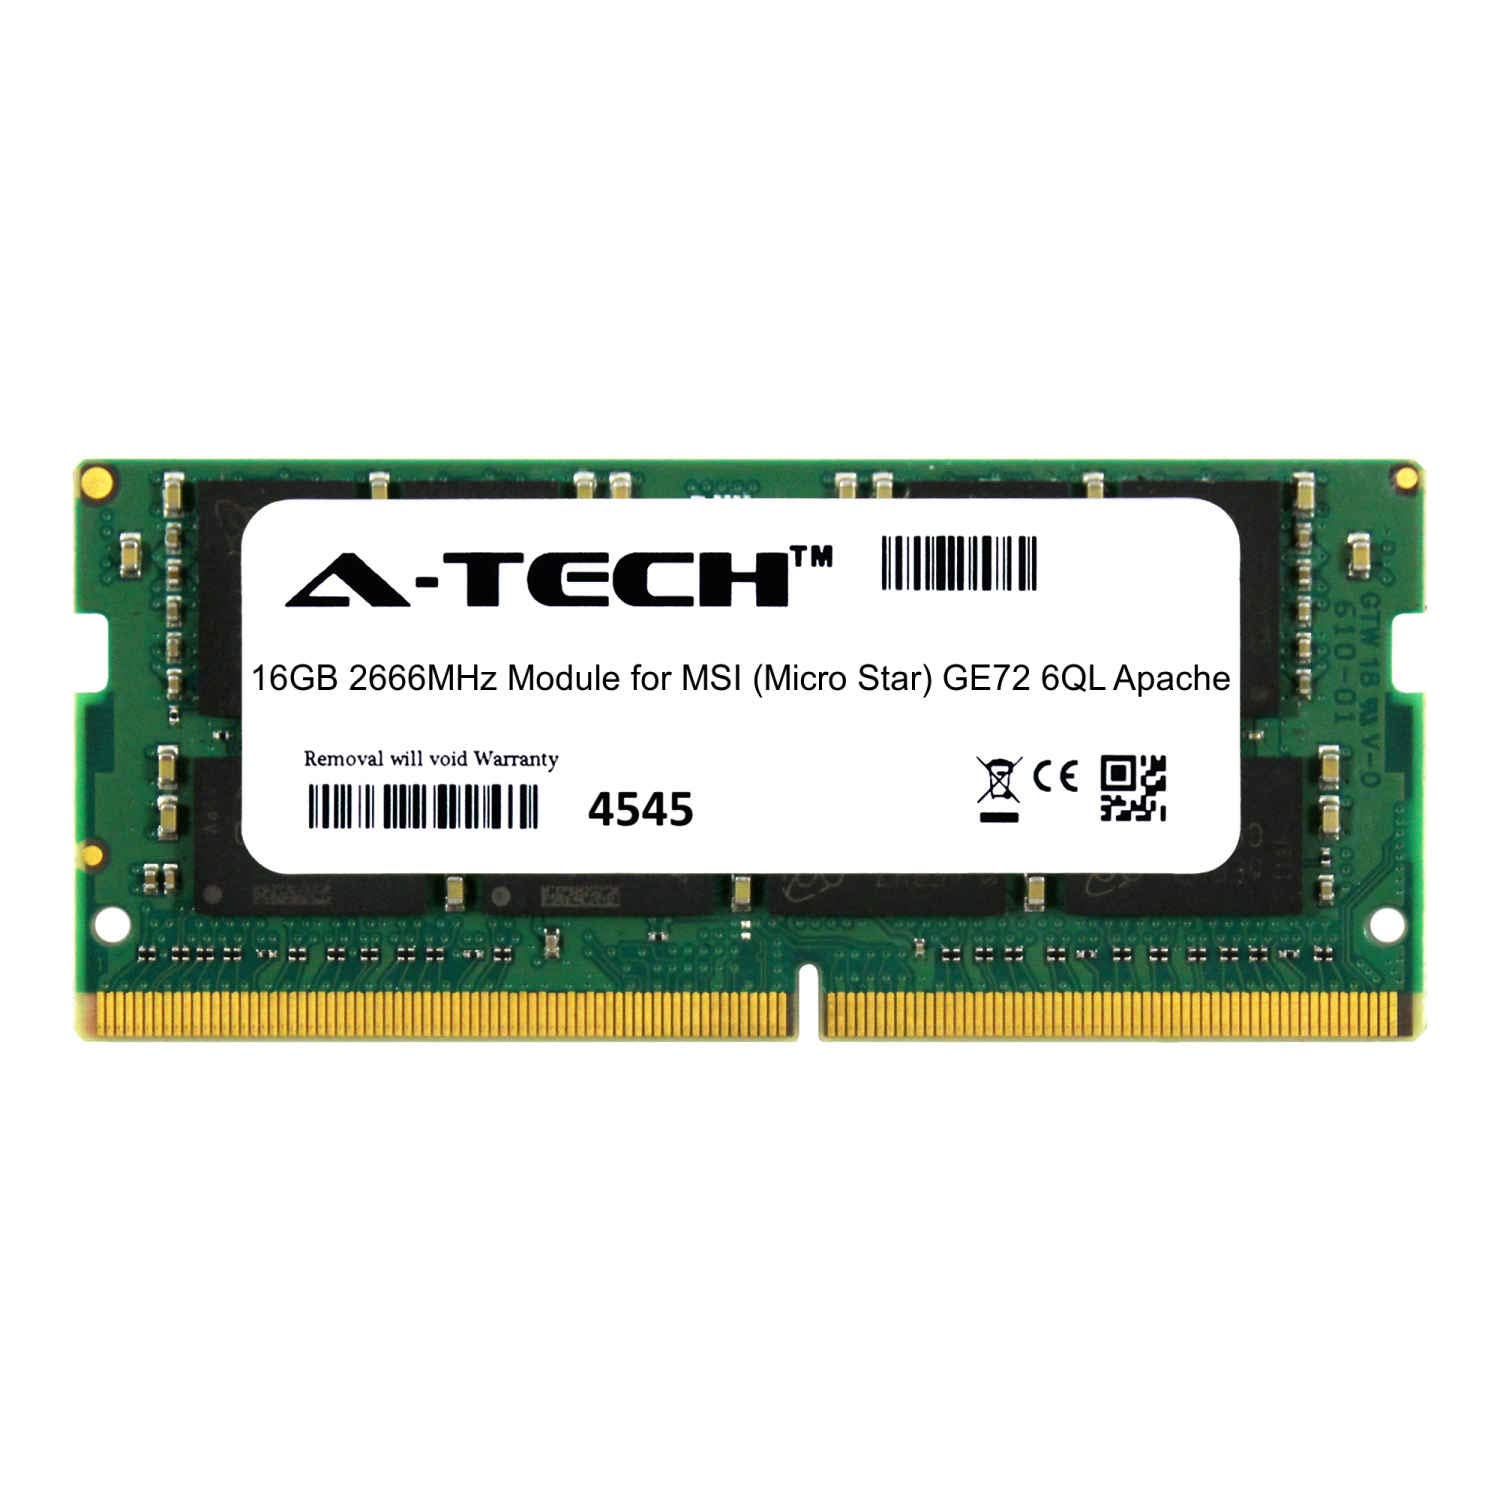 A-Tech 16GB Module for MSI (Micro Star) GE72 6QL Apache Laptop & Notebook Compatible DDR4 2666Mhz Memory Ram (ATMS368238A25832X1)